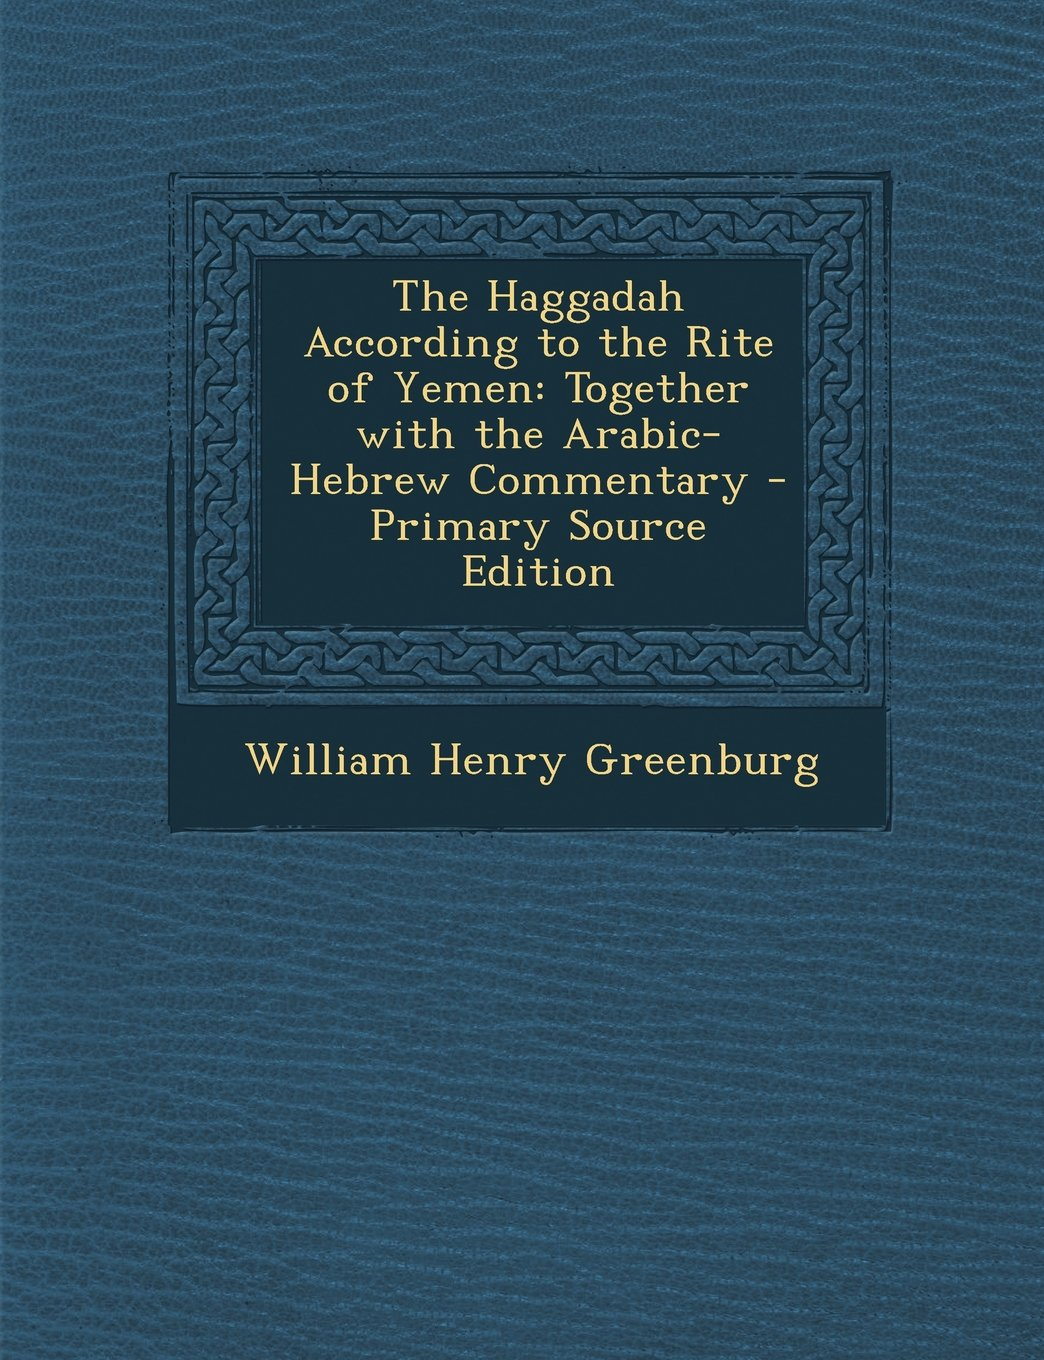 The Haggadah According to the Rite of Yemen: Together with the Arabic-Hebrew Commentary